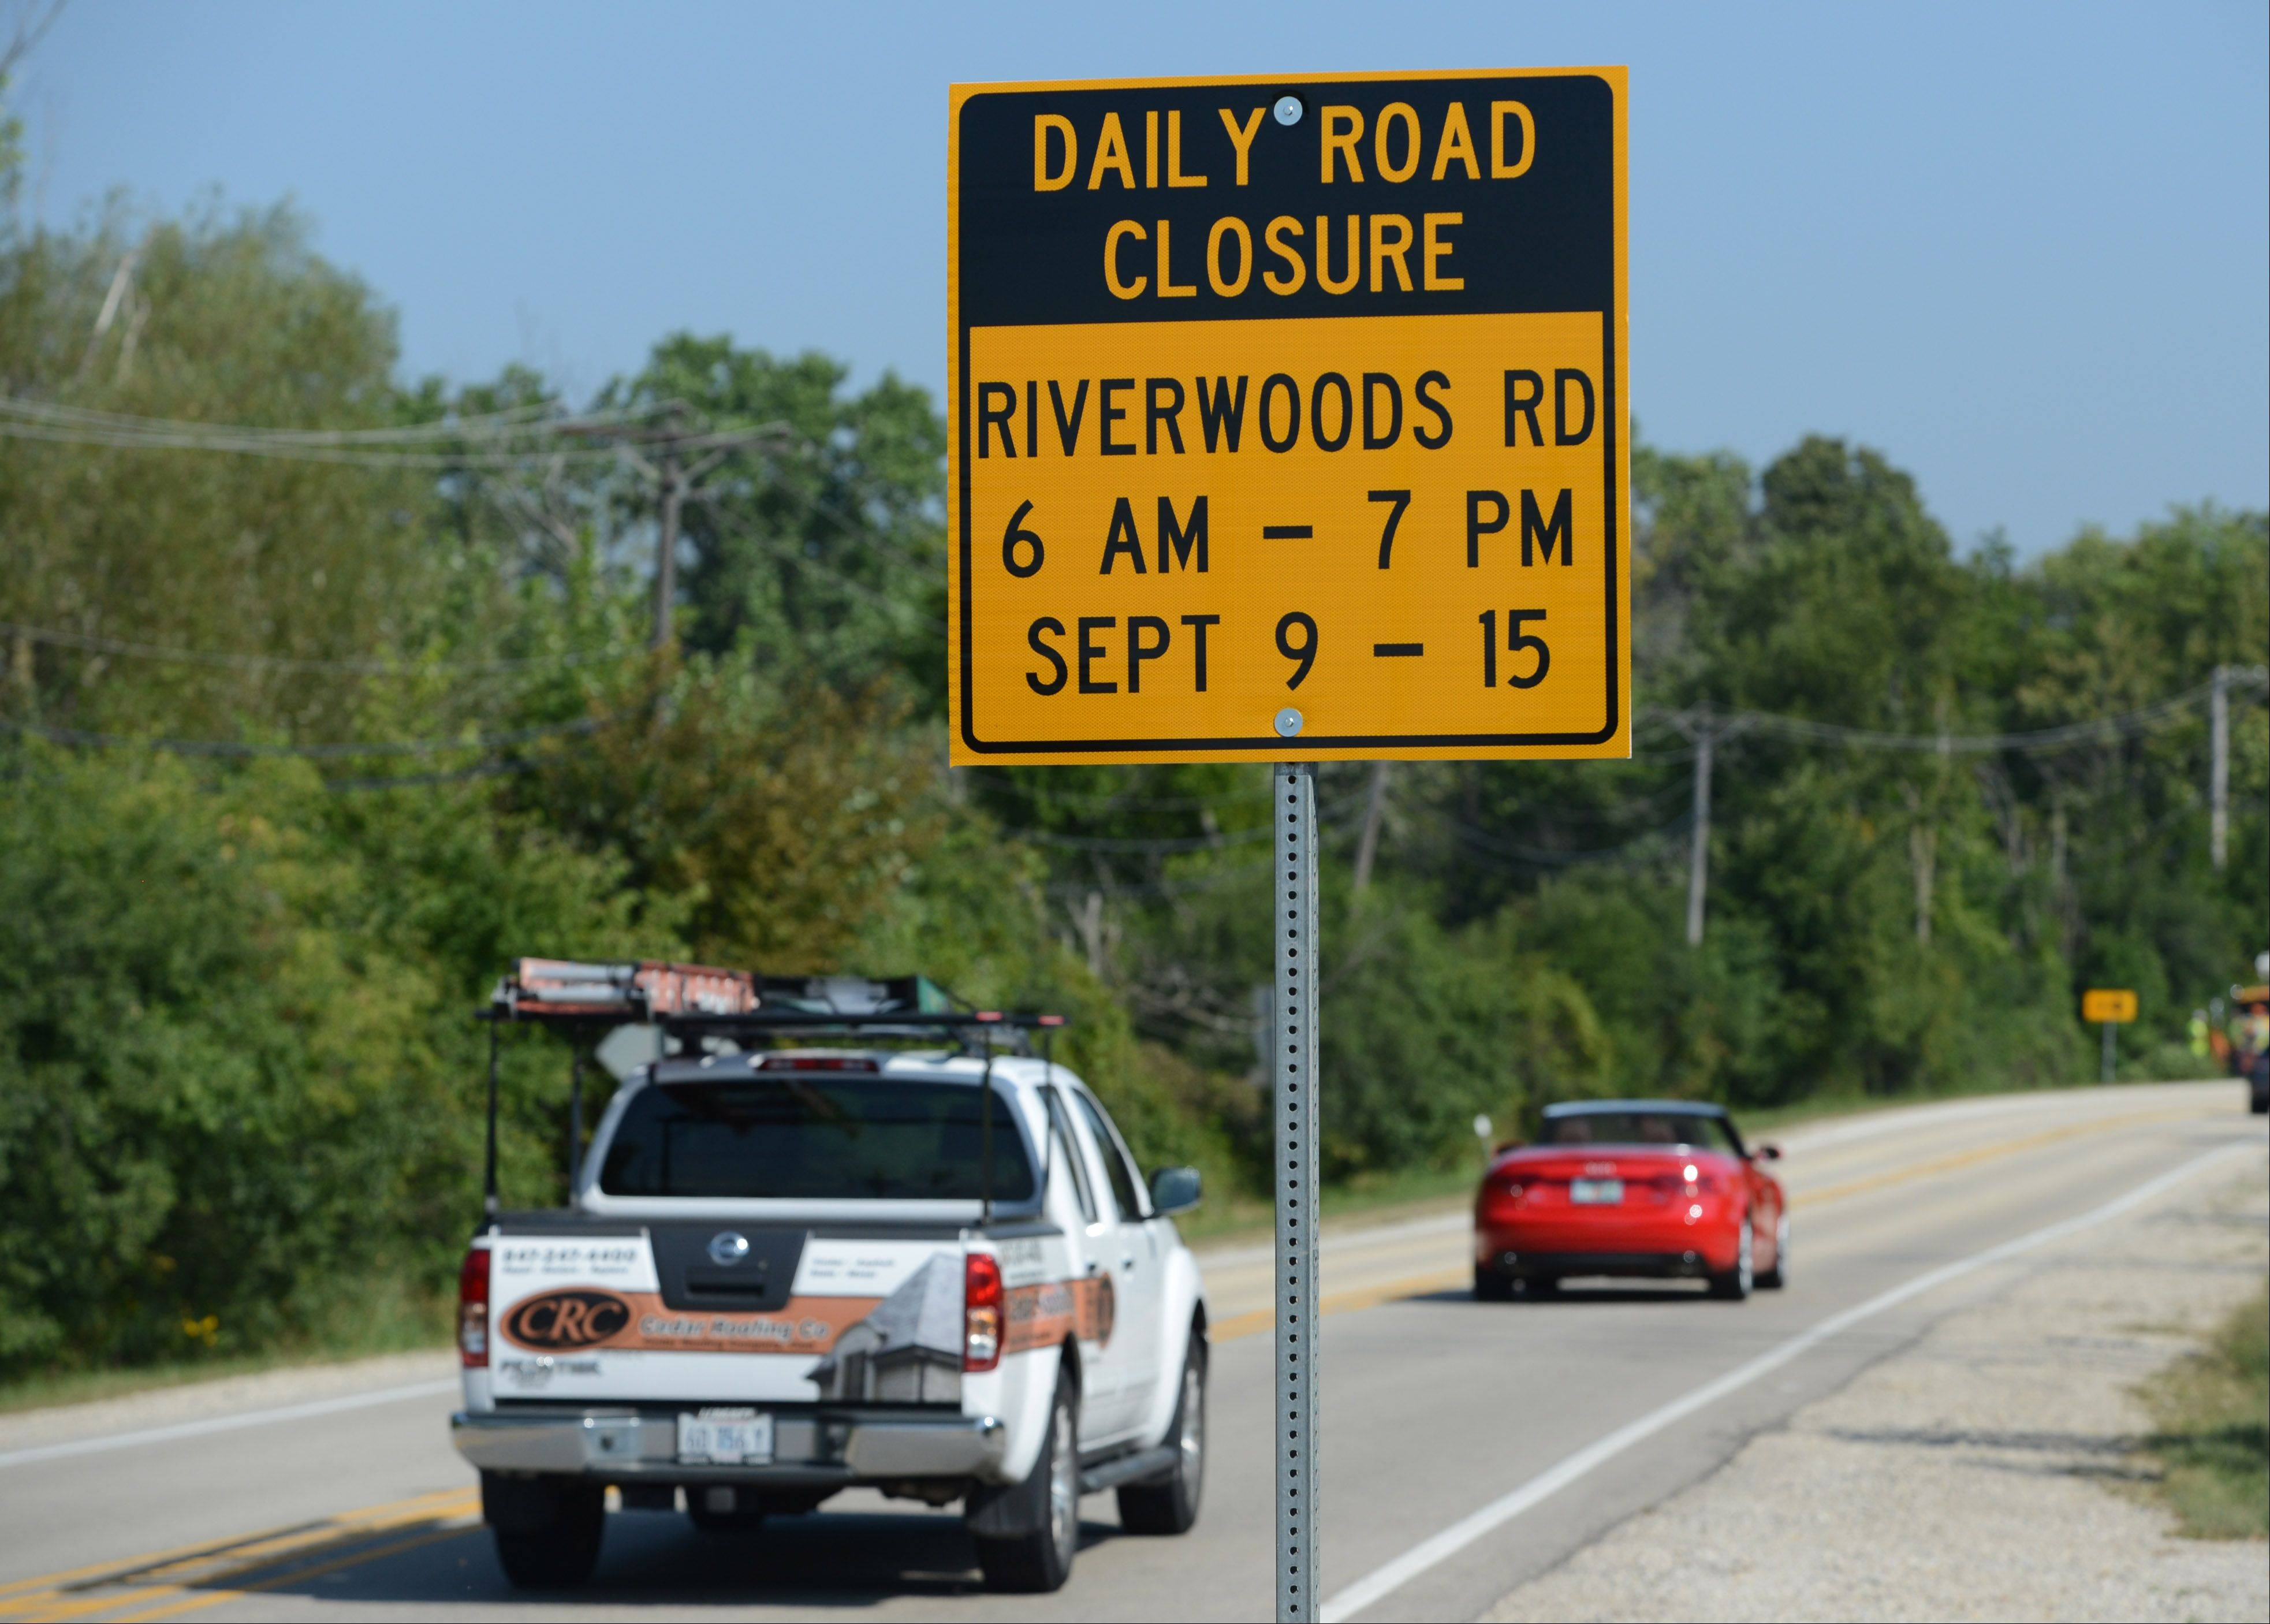 A temporary sign sits along southbound Riverwoods Road near Everett Road alerting drivers to upcoming closures due to parking on land owned by W.W. Grainger Inc. in Mettawa for the BMW Champi